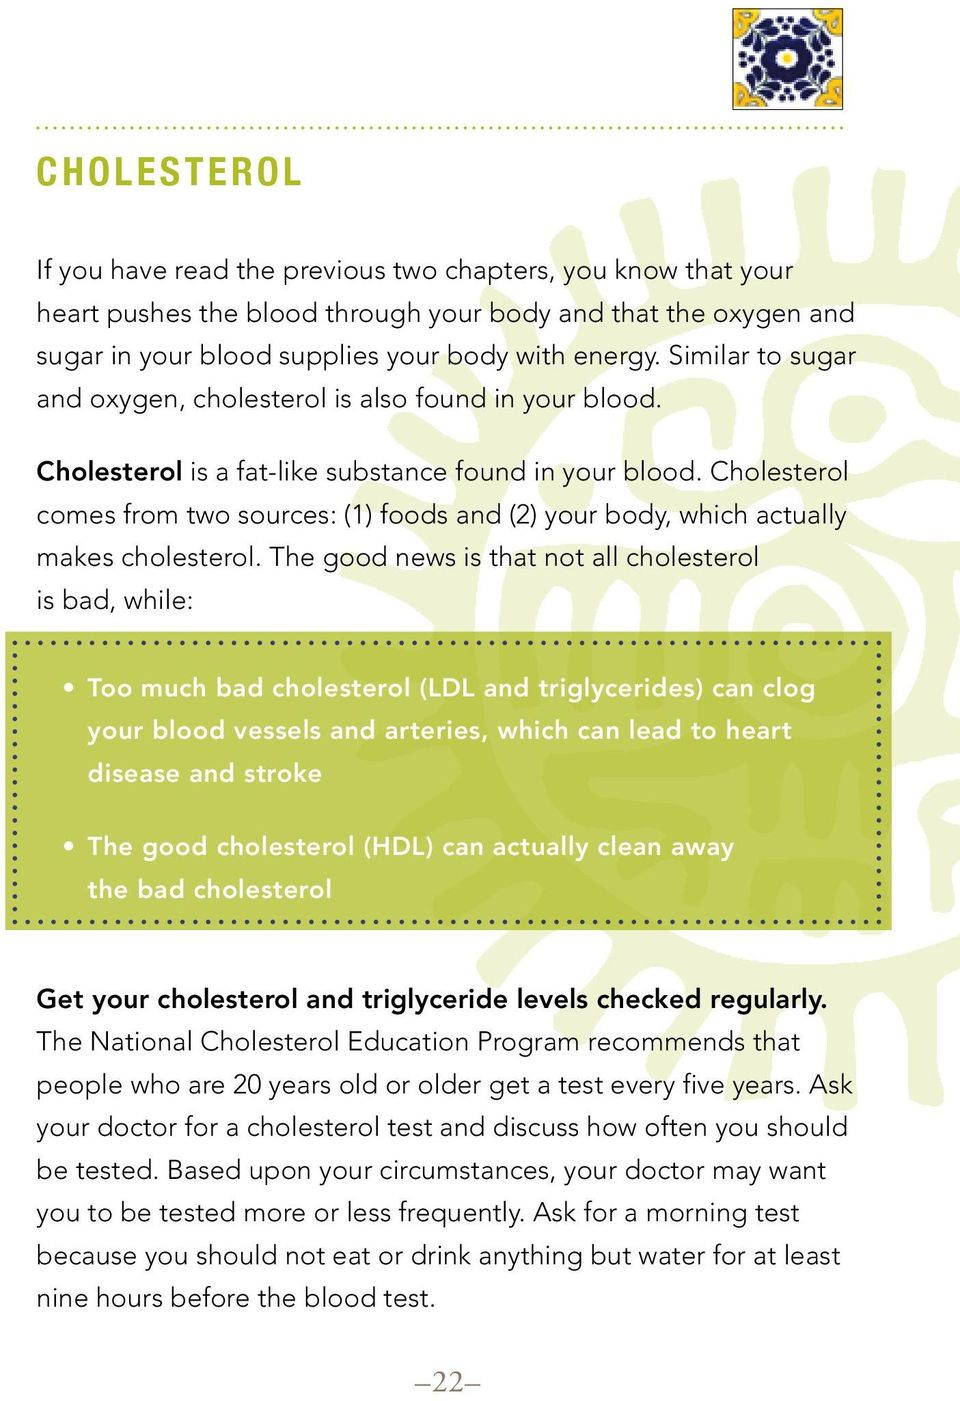 Cholesterol comes from two sources: (1) foods and (2) your body, which actually makes cholesterol.